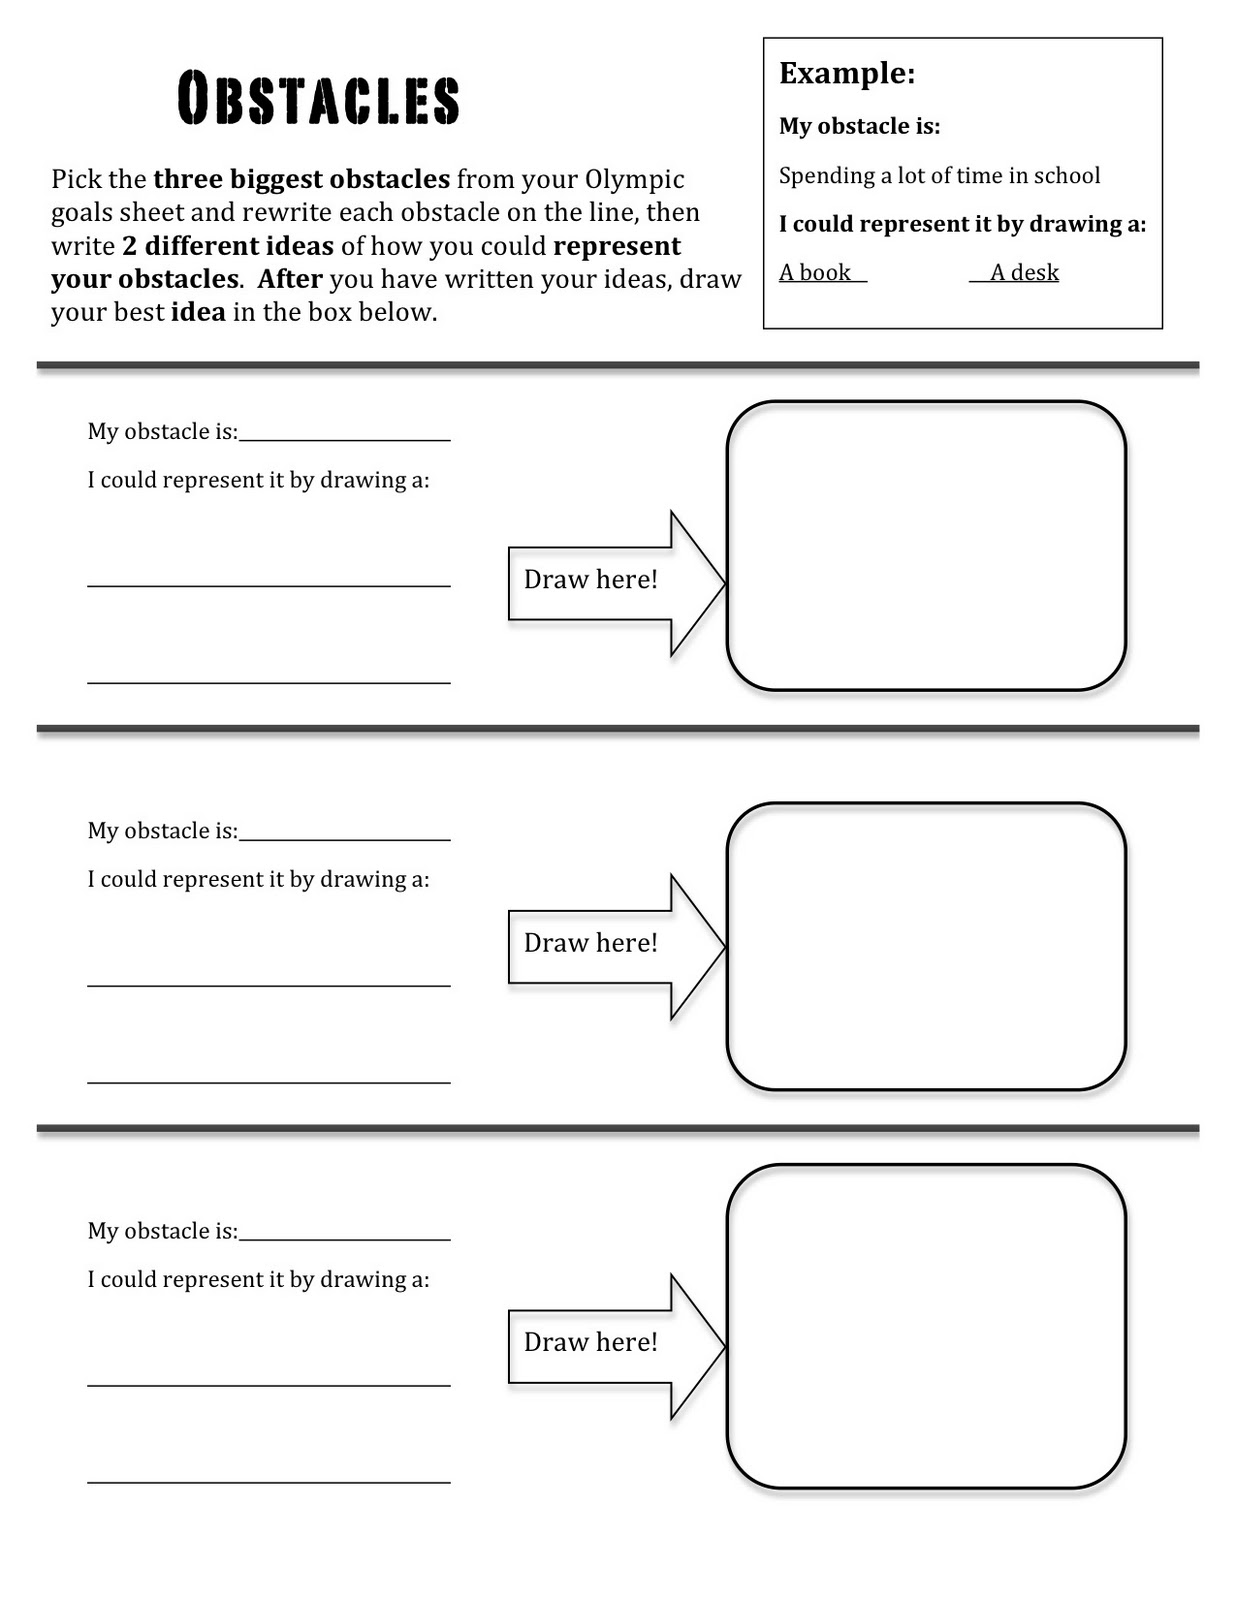 graphic organizer for research paper Scaffolding methods for research paper writing a research paper scaffold provides students with clear support for writing expository papers that include a question 12 | printout | graphic organizer i-search process reflection chart.